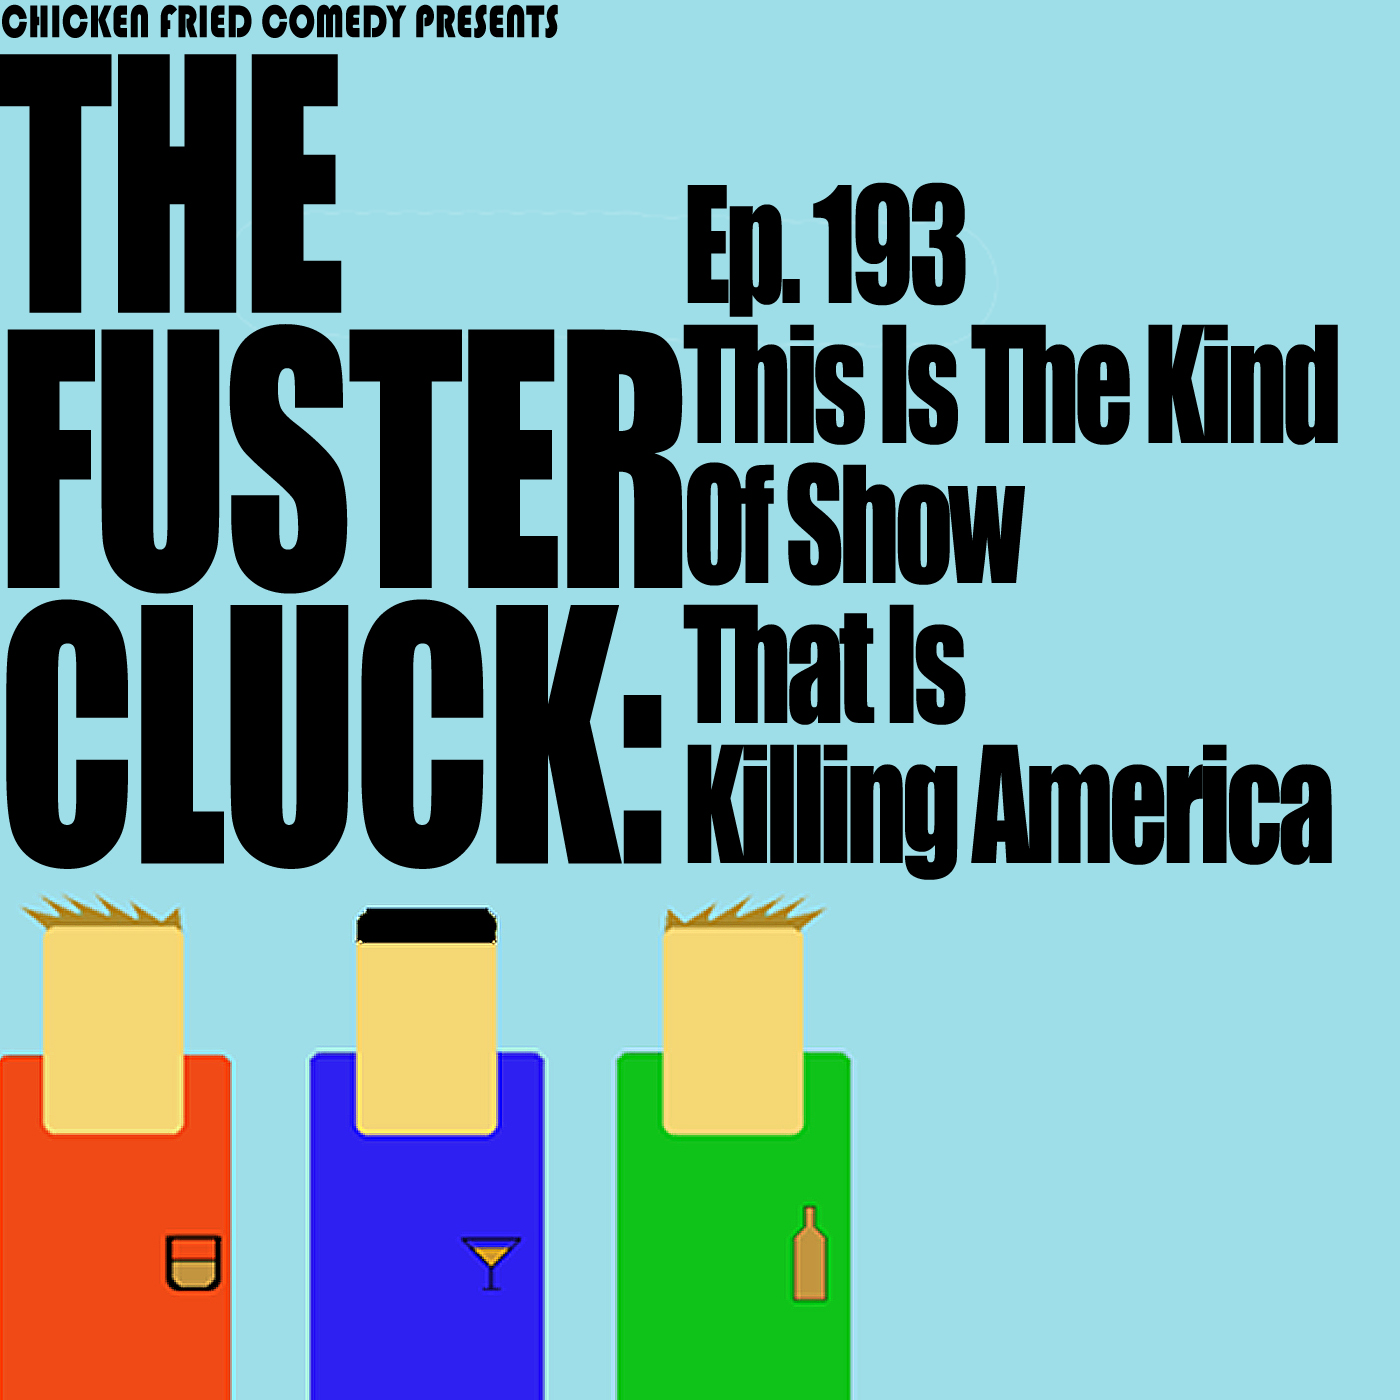 The Fustercluck Ep 193: This is the kind of show that is killing America